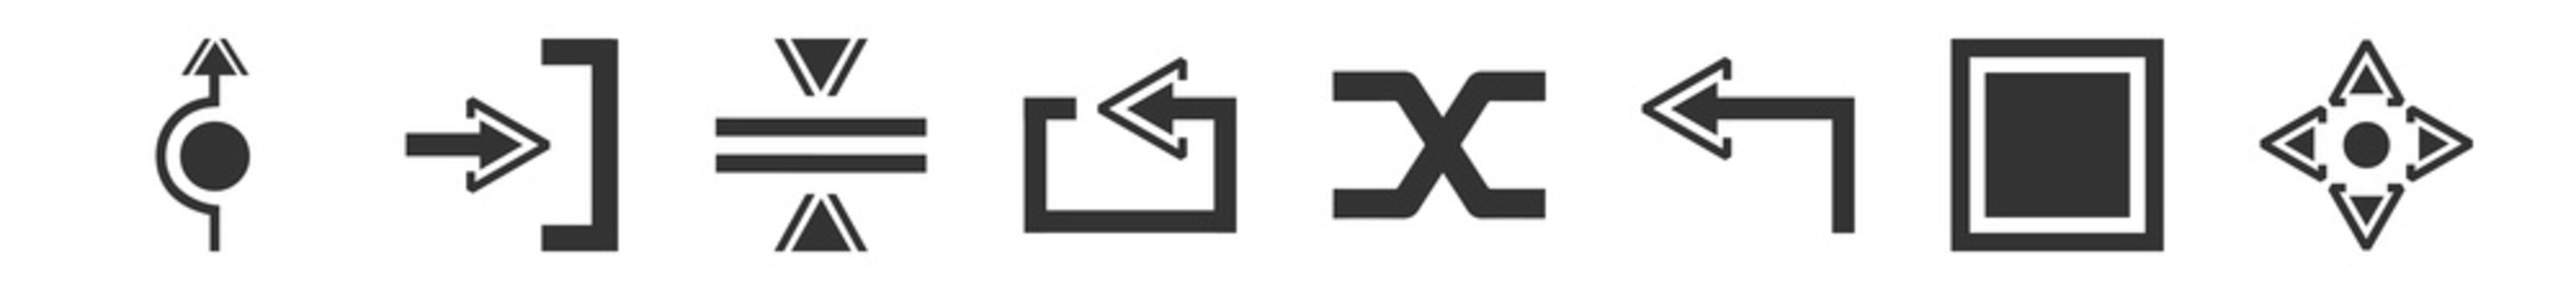 filled set of arrows icons. glyph vector icons such as roundabout, exit right, horizontal merge, looping arrow, suffle, move. vector illustration.